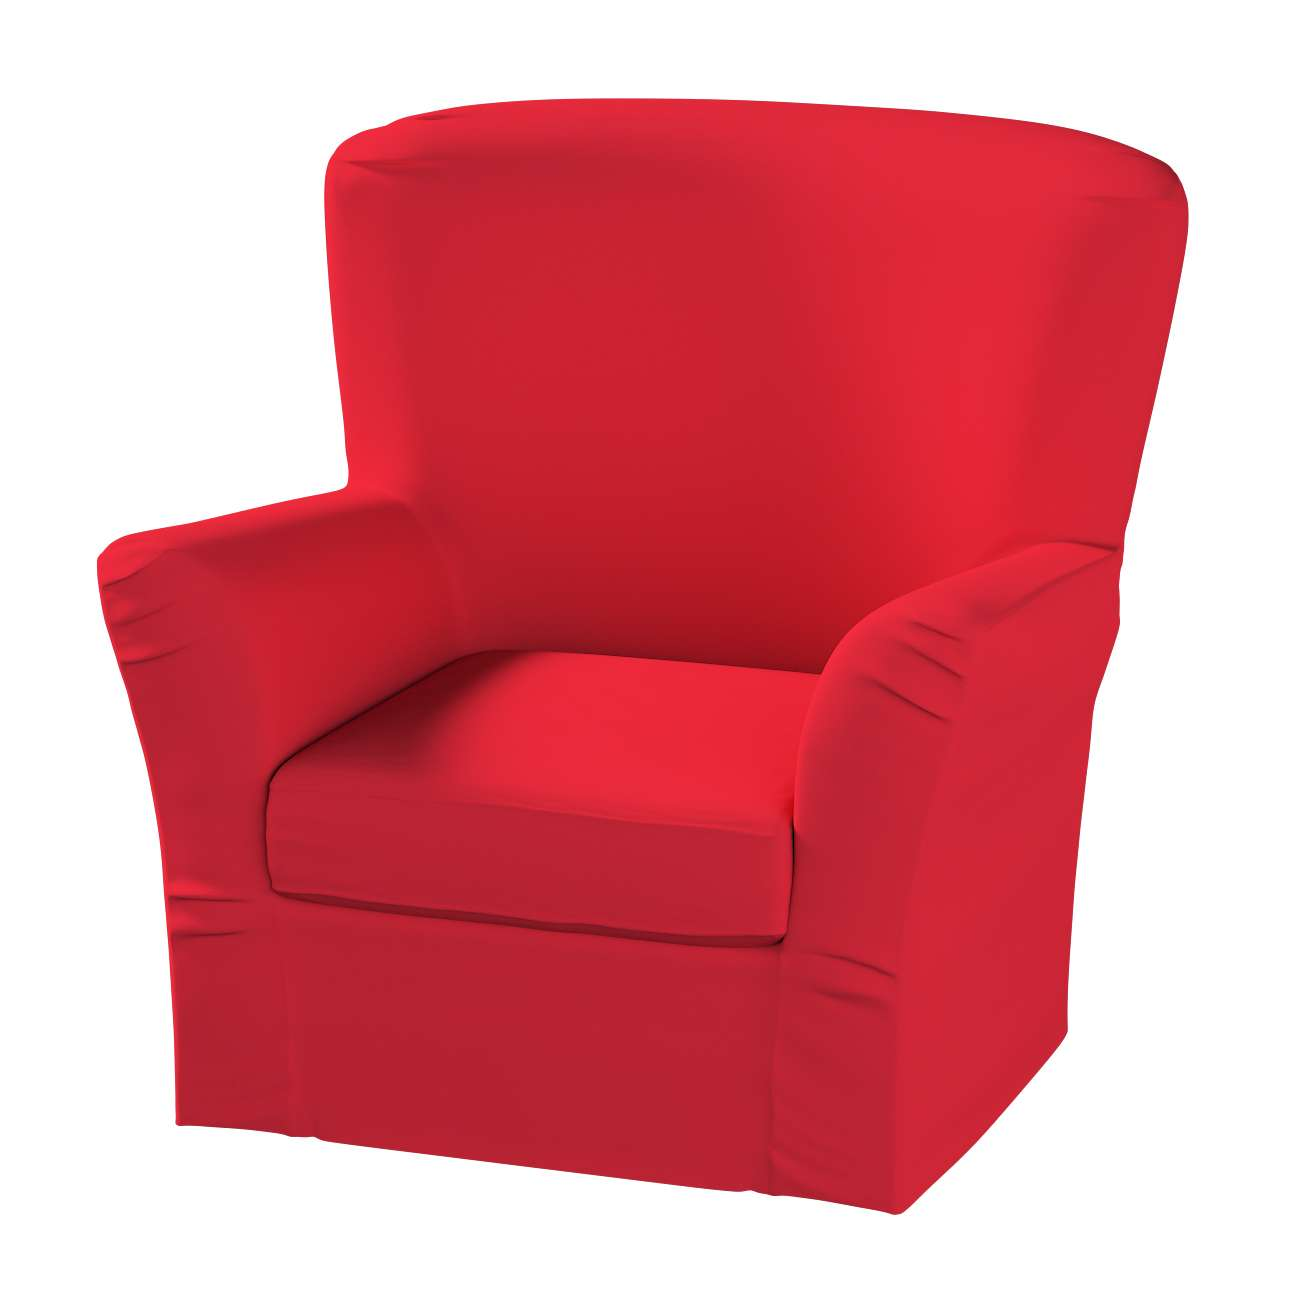 Tomelilla armchair  Tomelilla armchair in collection Panama Cotton, fabric: 702-04